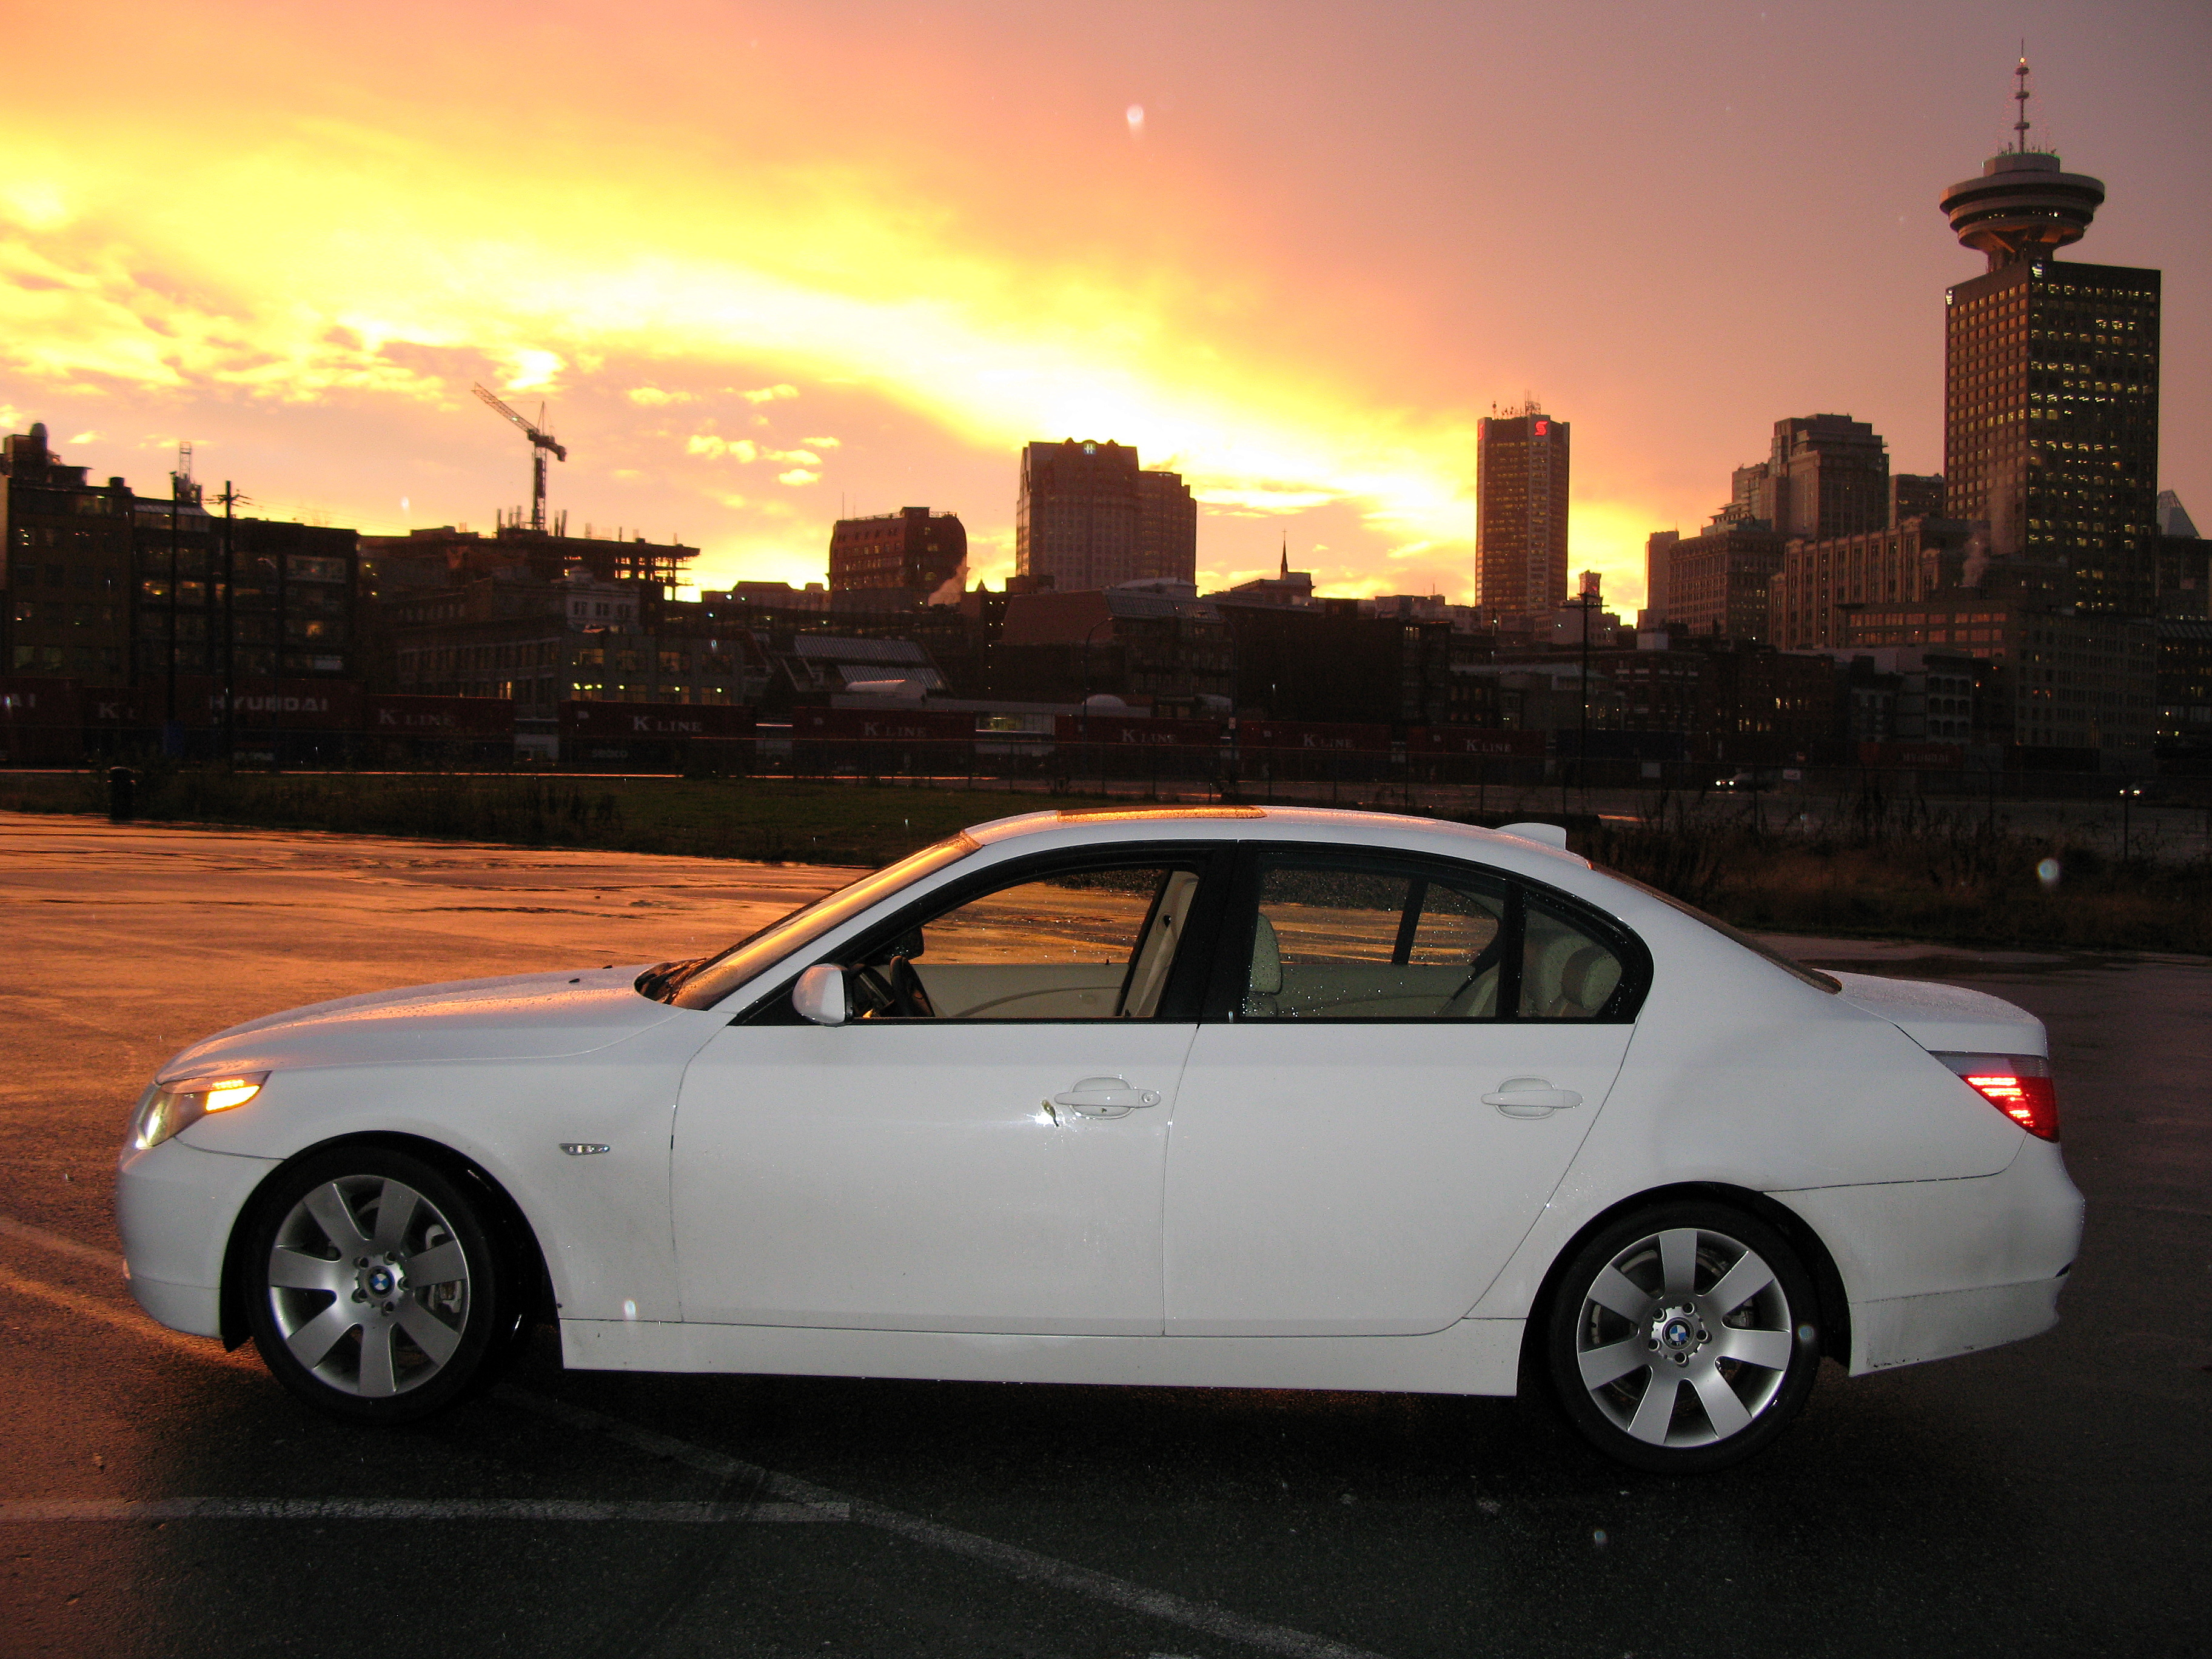 2004 BMW 530i 4DR | Flickr - Photo Sharing!